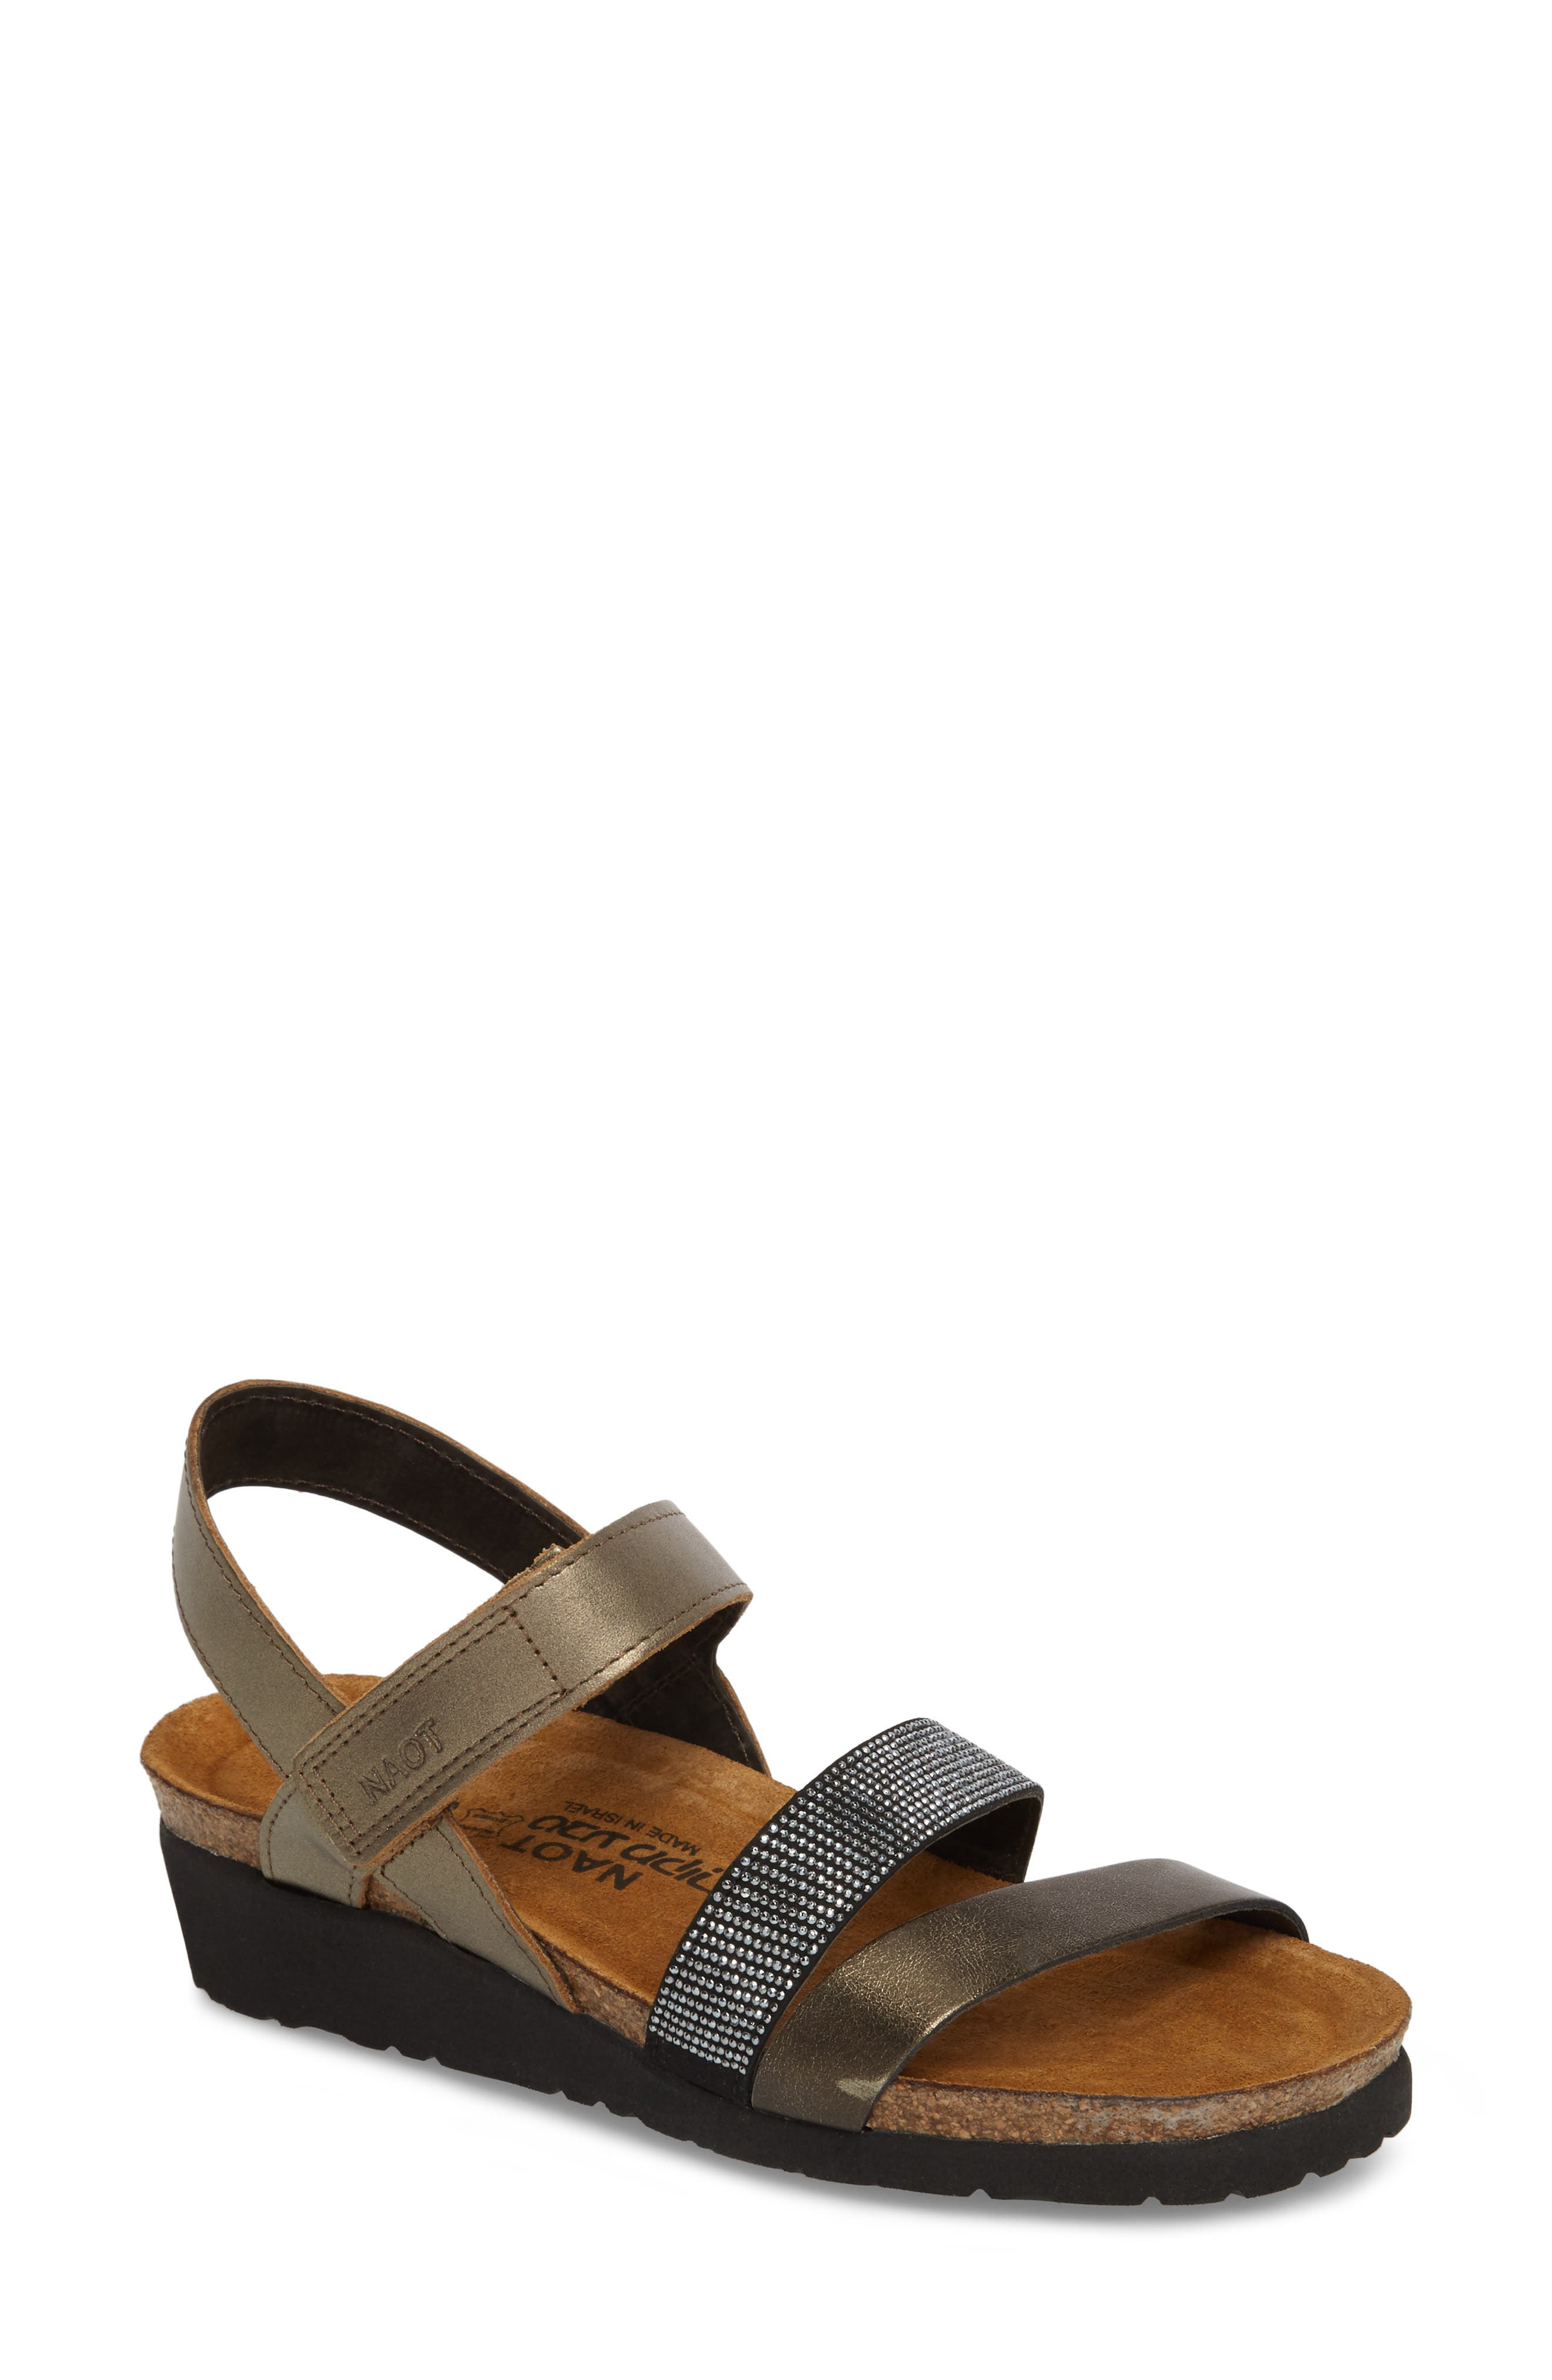 'Krista' Sandal,                         Main,                         color, Pewter Leather